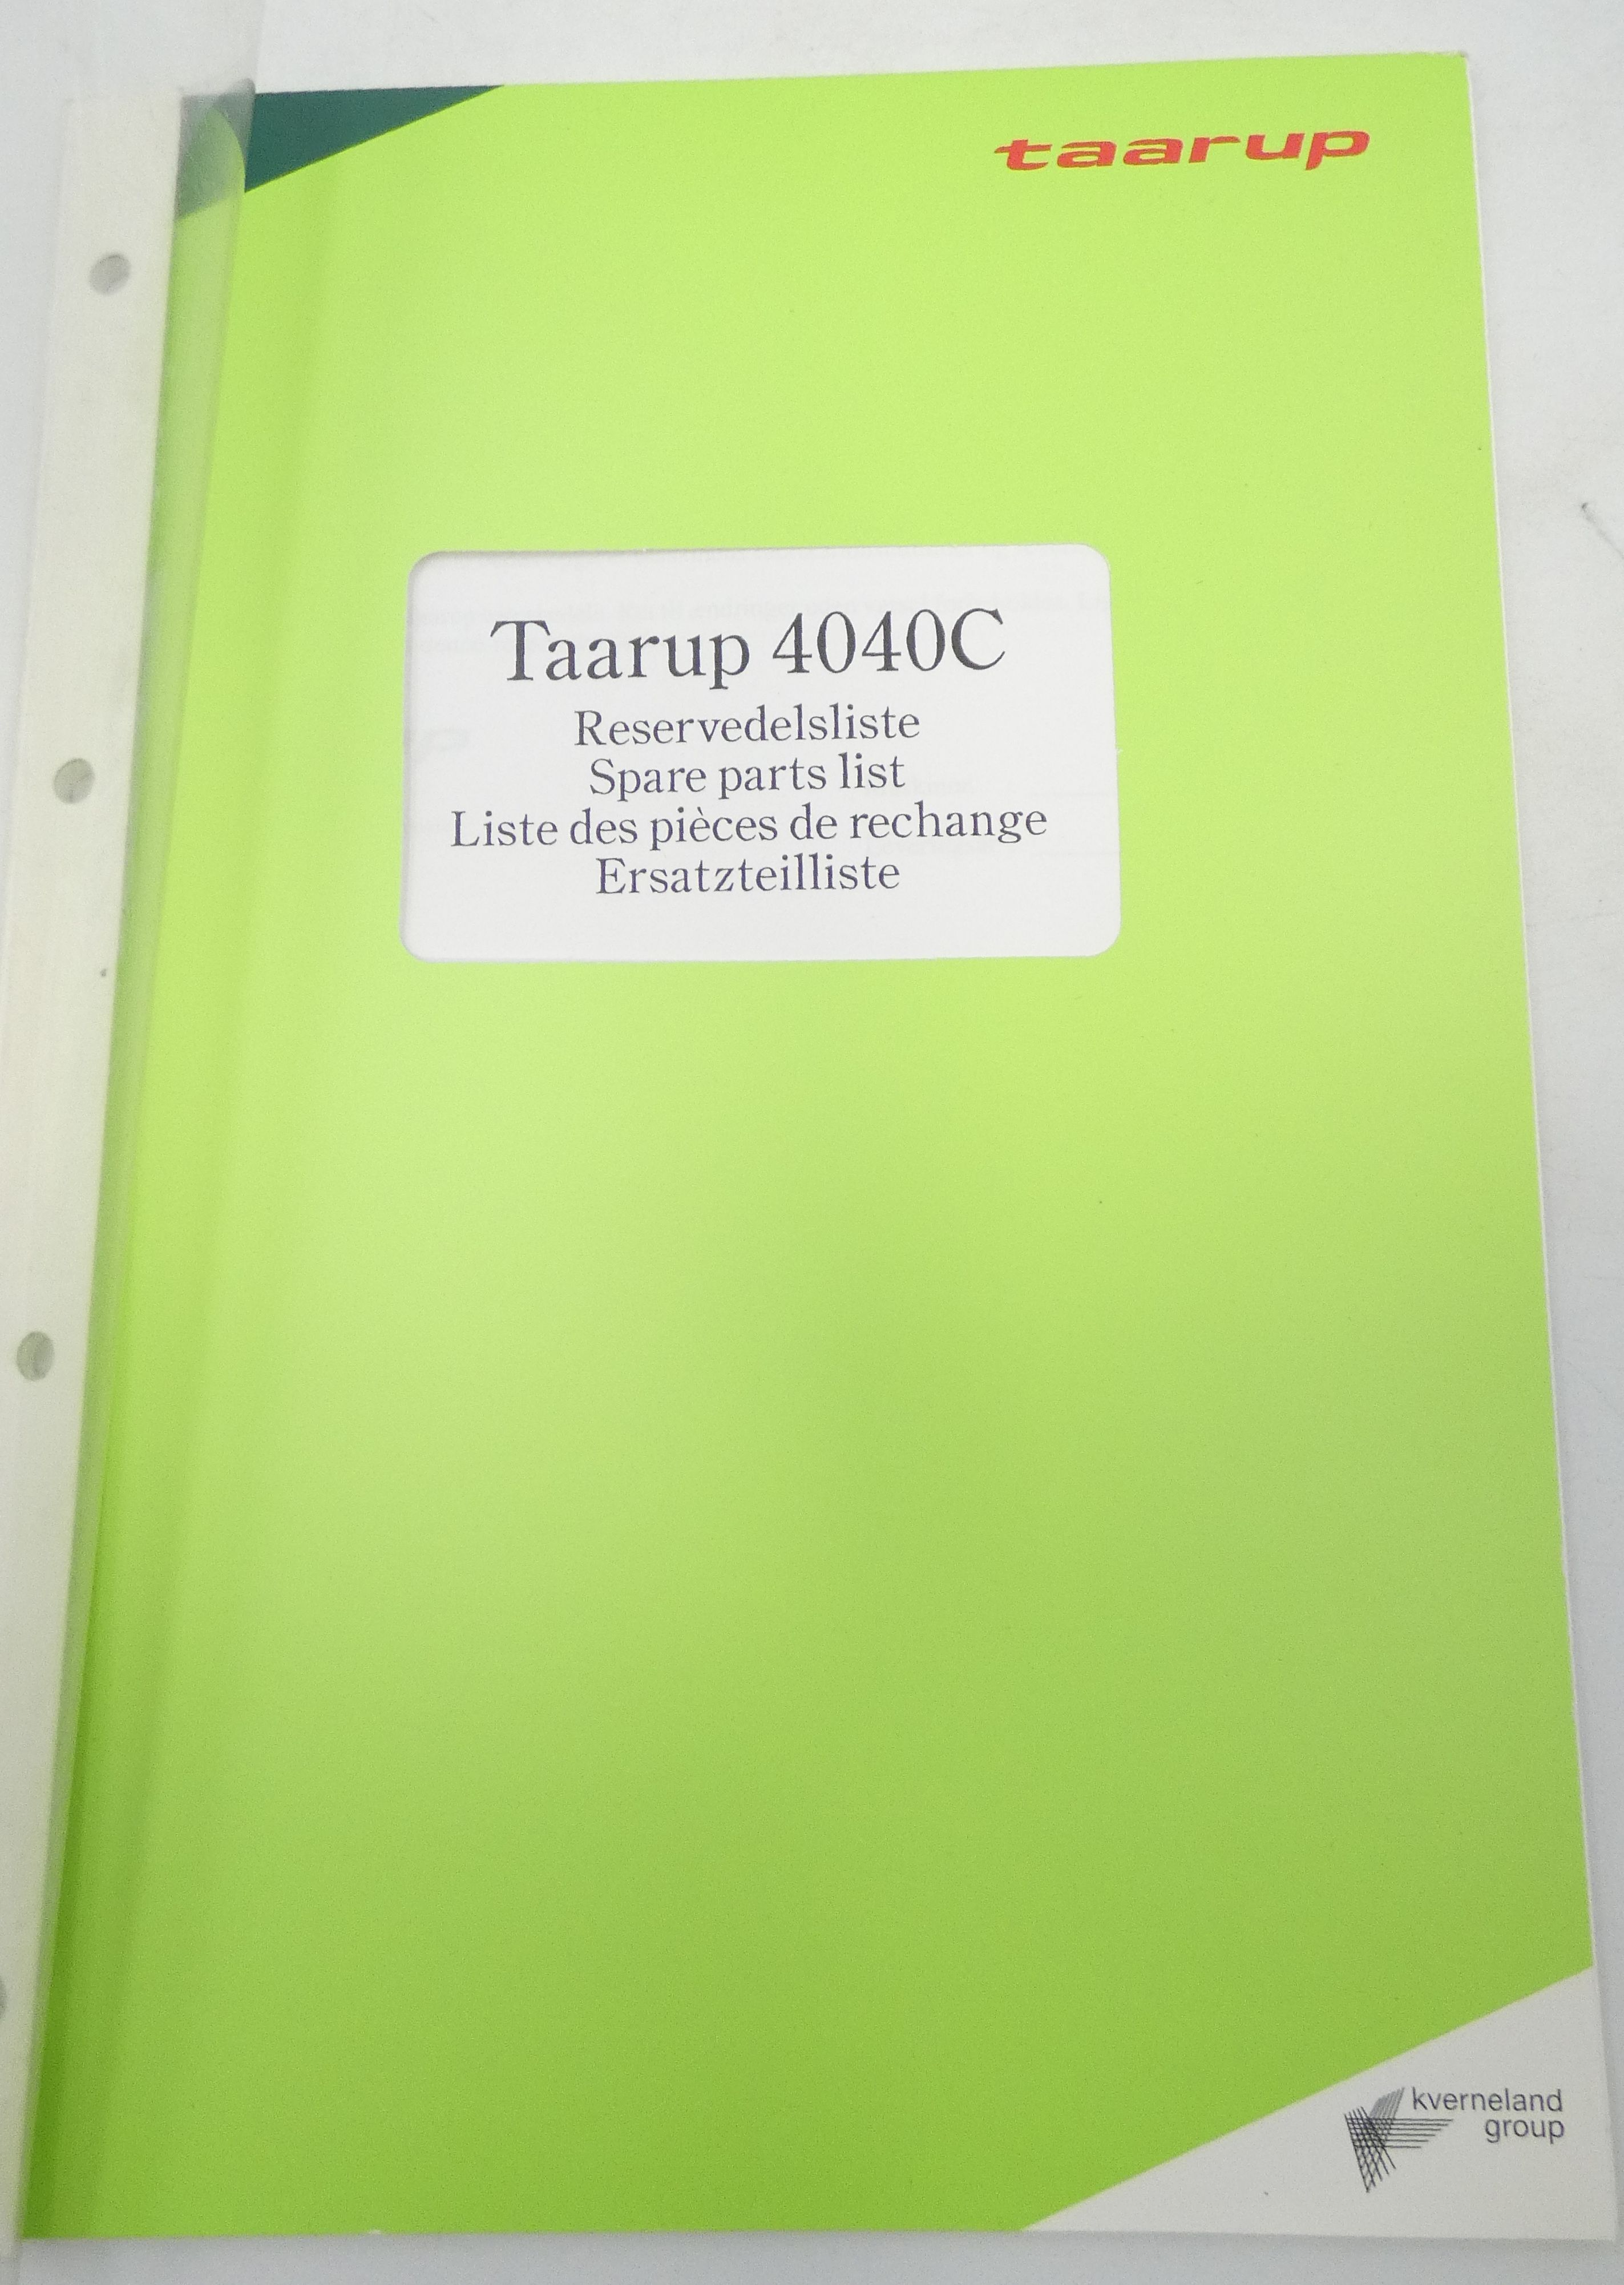 Taarup 4040C spare parts list